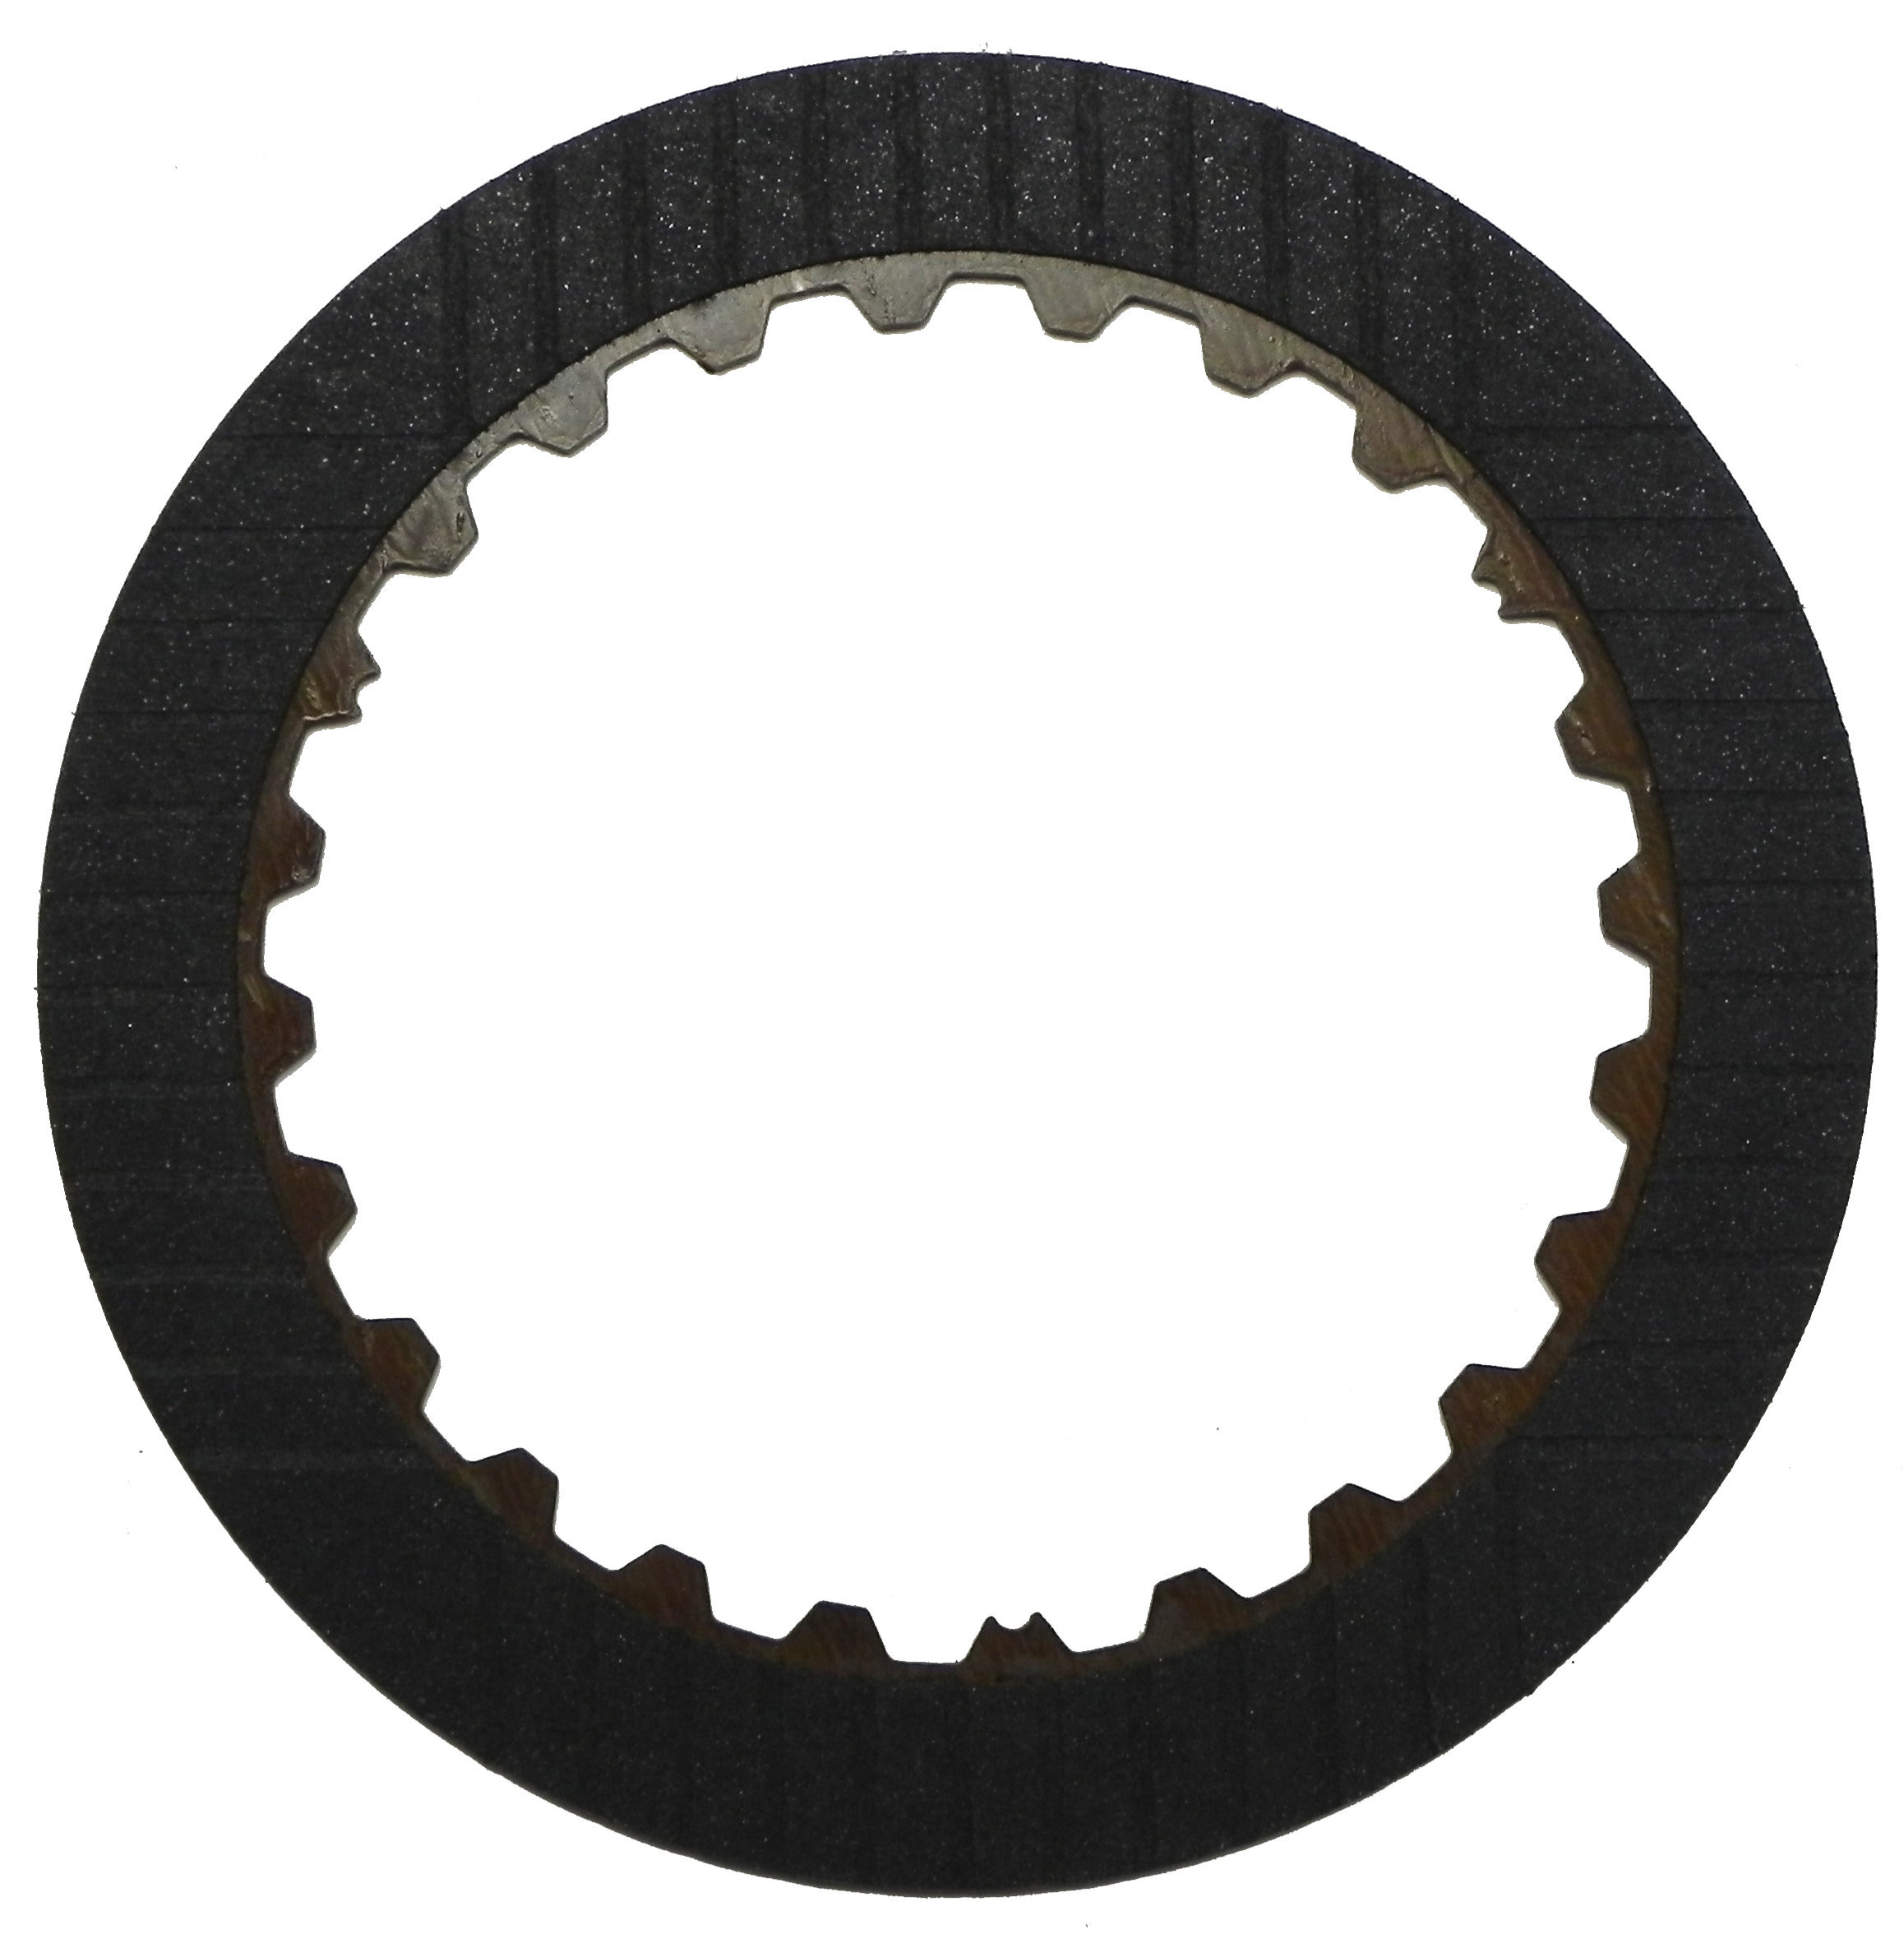 R572630 | 2005-ON Friction Clutch Plate High Energy K3 Clutch Single Sided, ID Spline High Energy